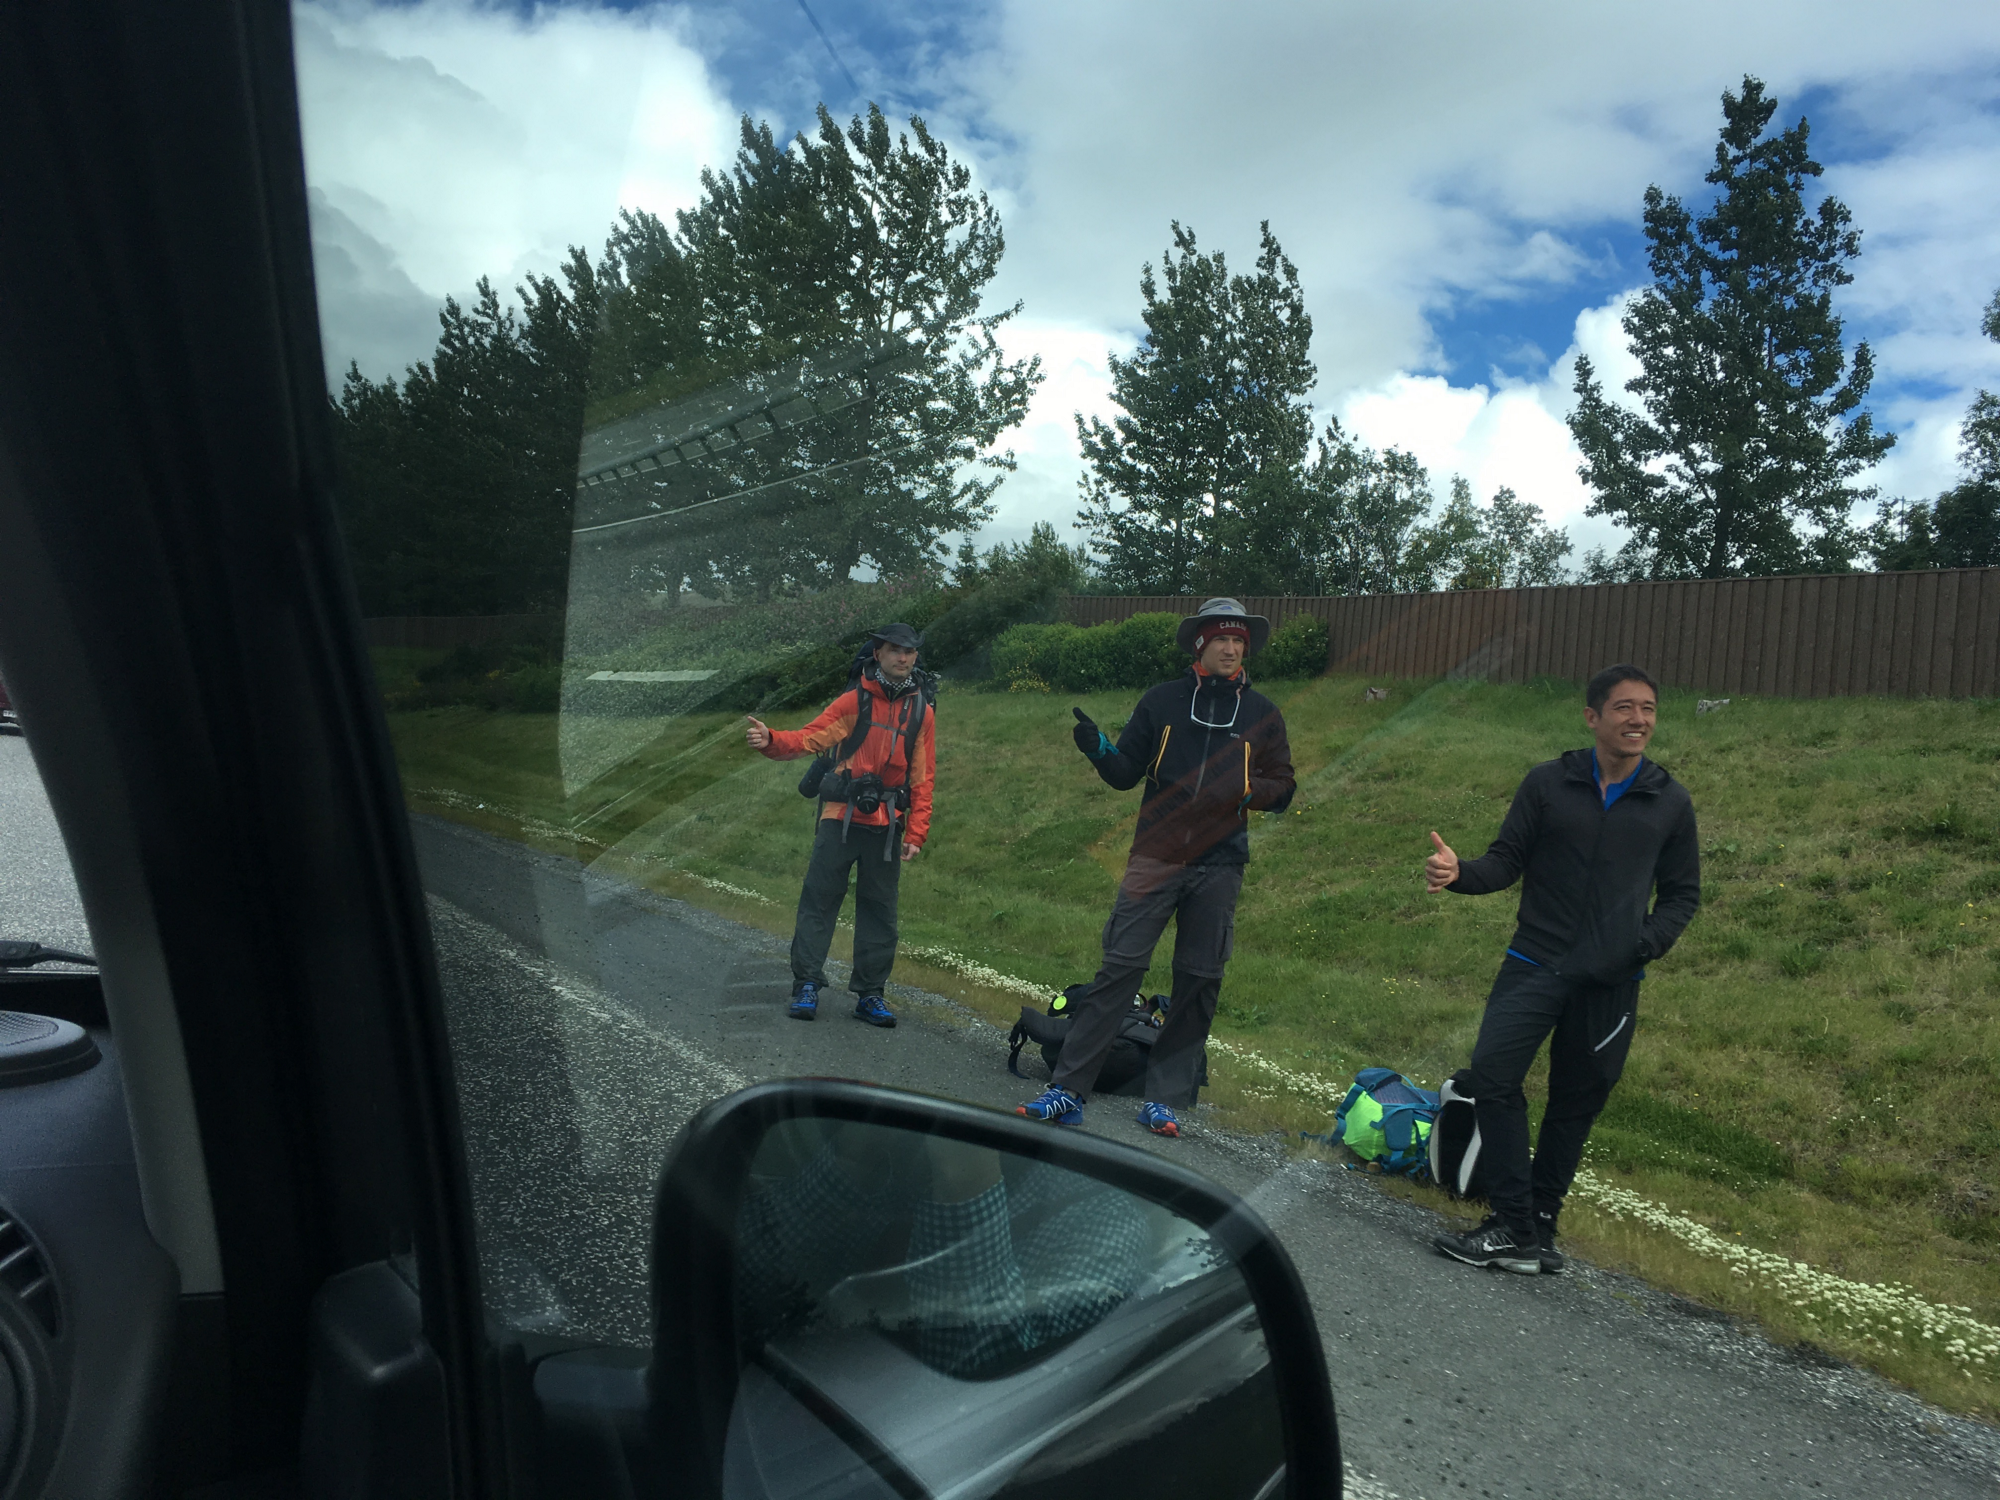 There are lots of hitchhikers in Iceland, like these friendly,  non-axe-murdering travelers I spotted outside of Reykjavik. Why don't we  pick one up?